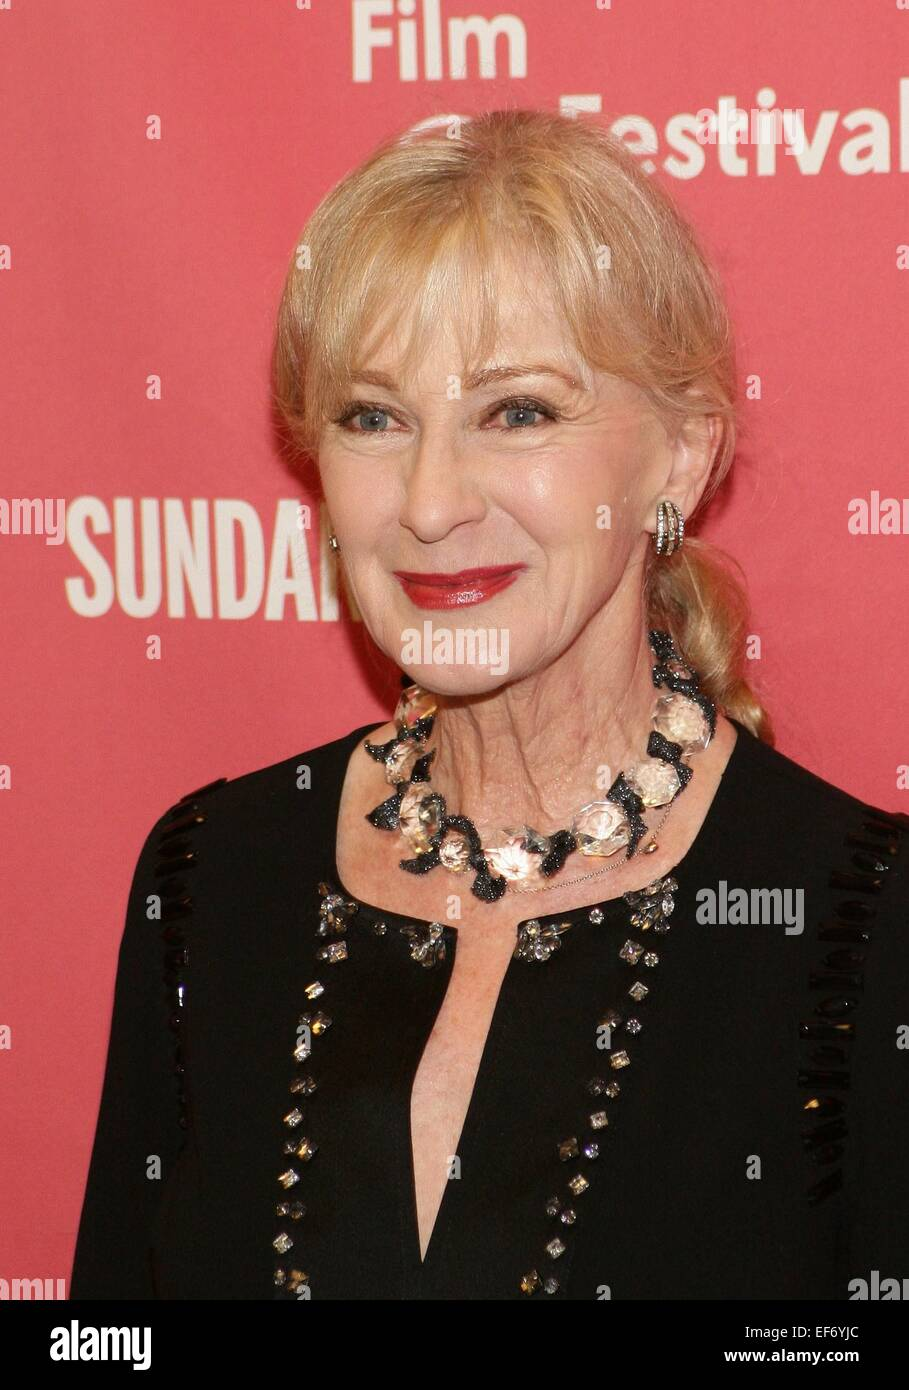 Sondra Locke,Louise Brealey Porno gallery Susan Goforth,Jackie Joyner-Kersee 6 Olympic medals